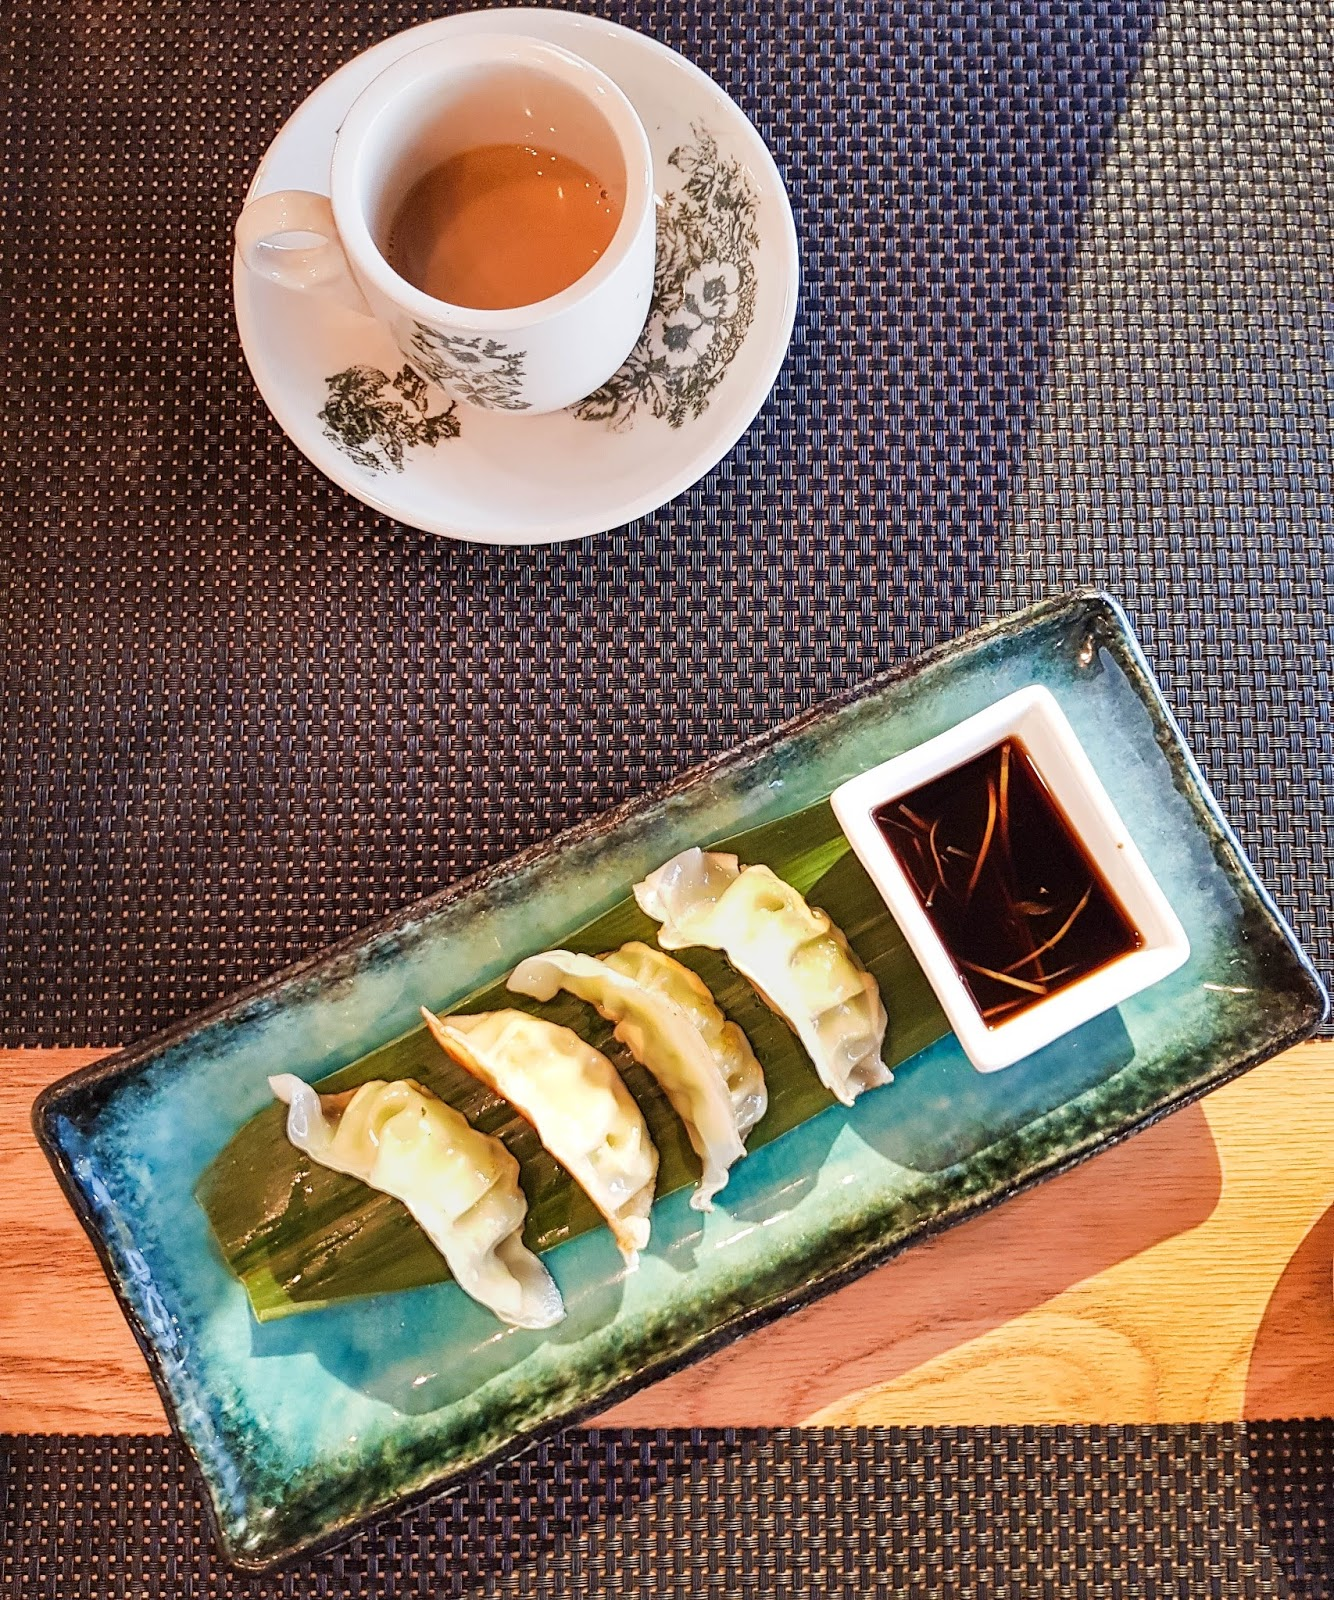 Chicken gyoza and malaysian coffee